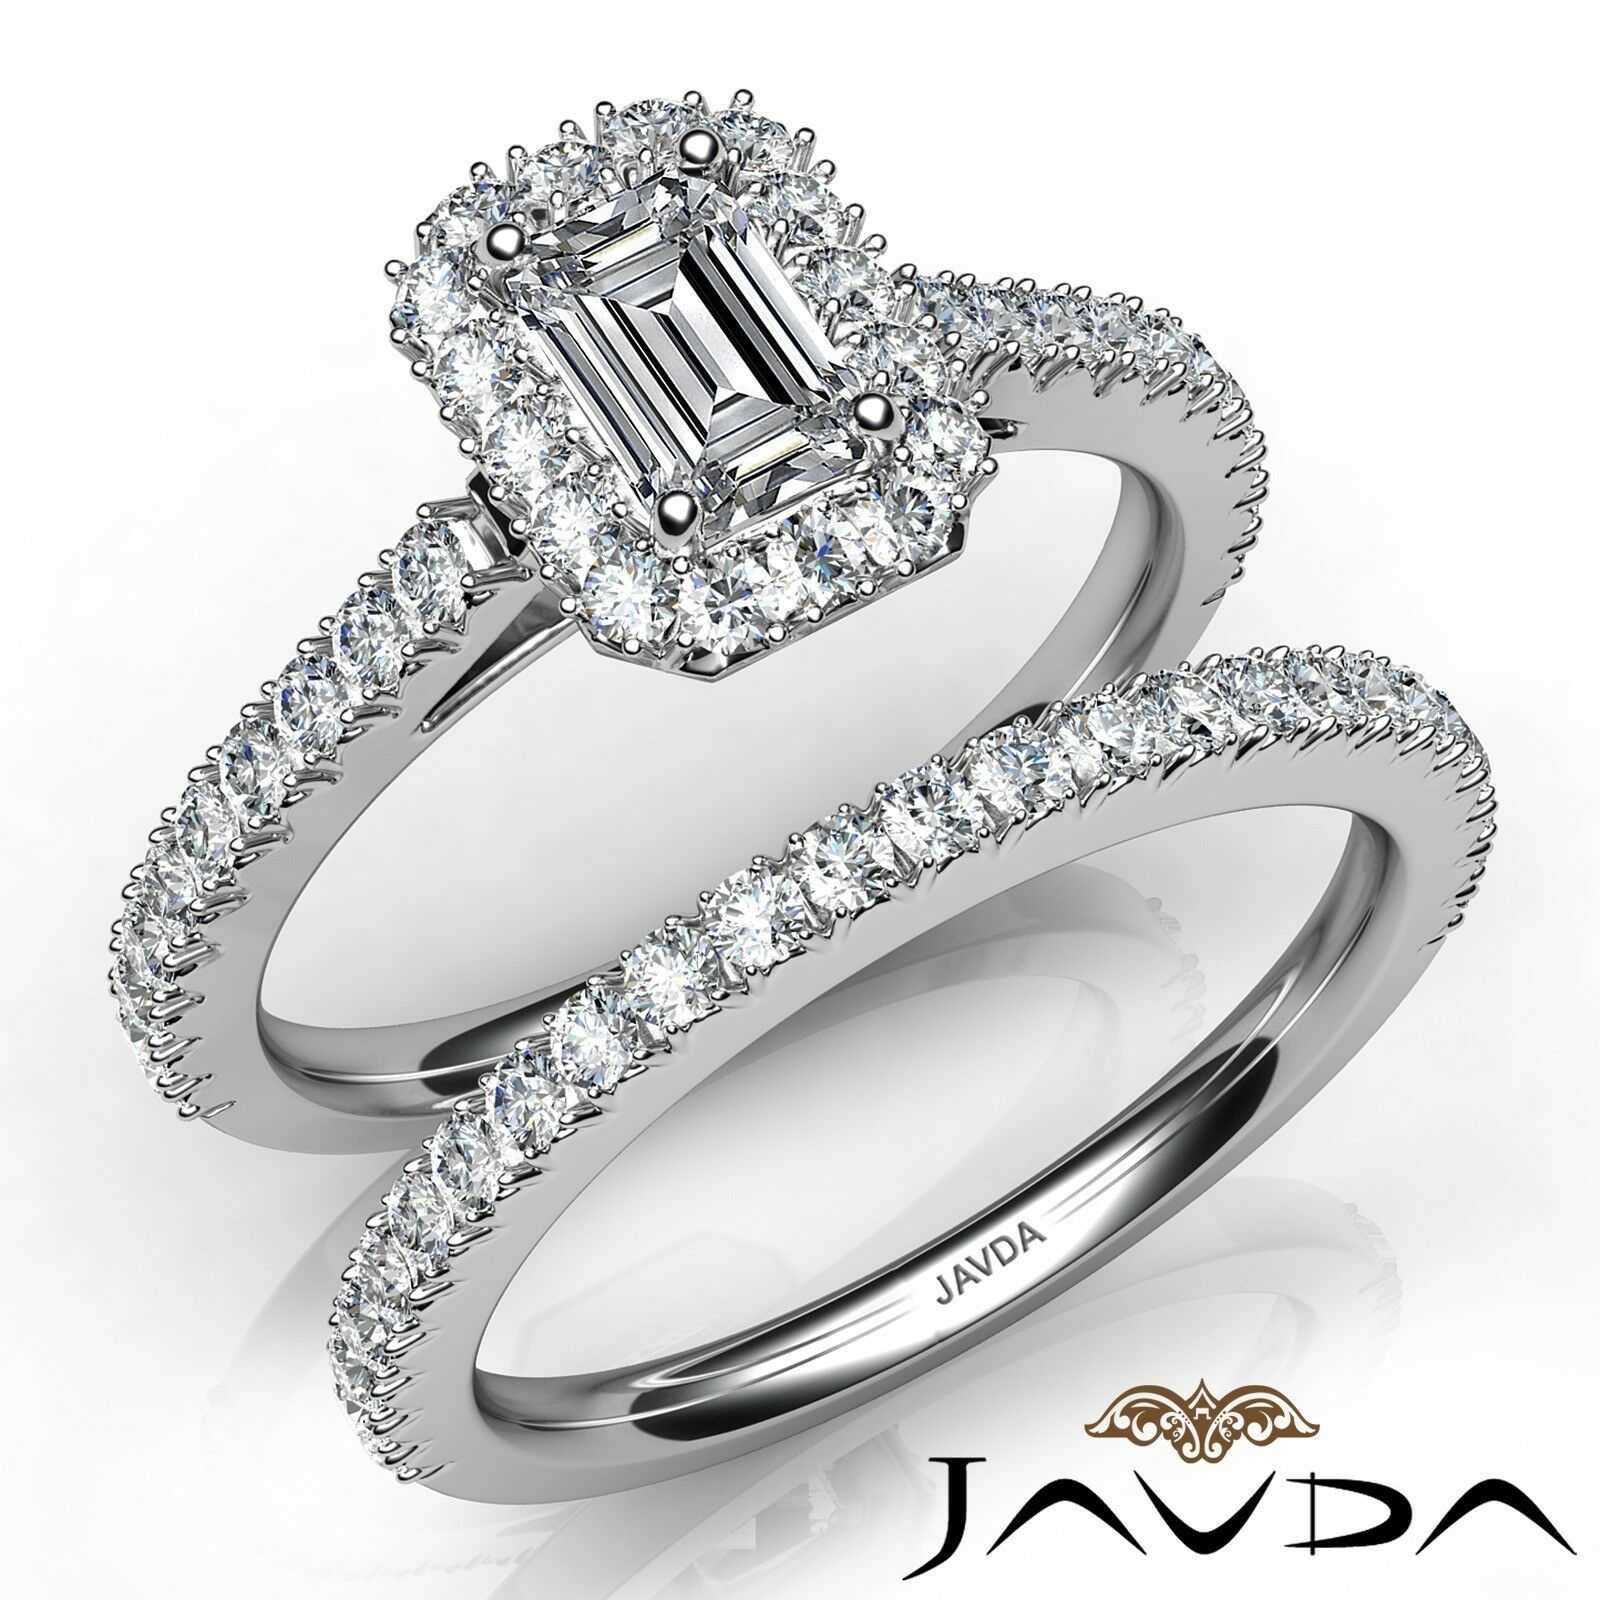 1.91ctw French Pave Halo Bridal Set Emerald Diamond Engagement Ring GIA E-VVS1